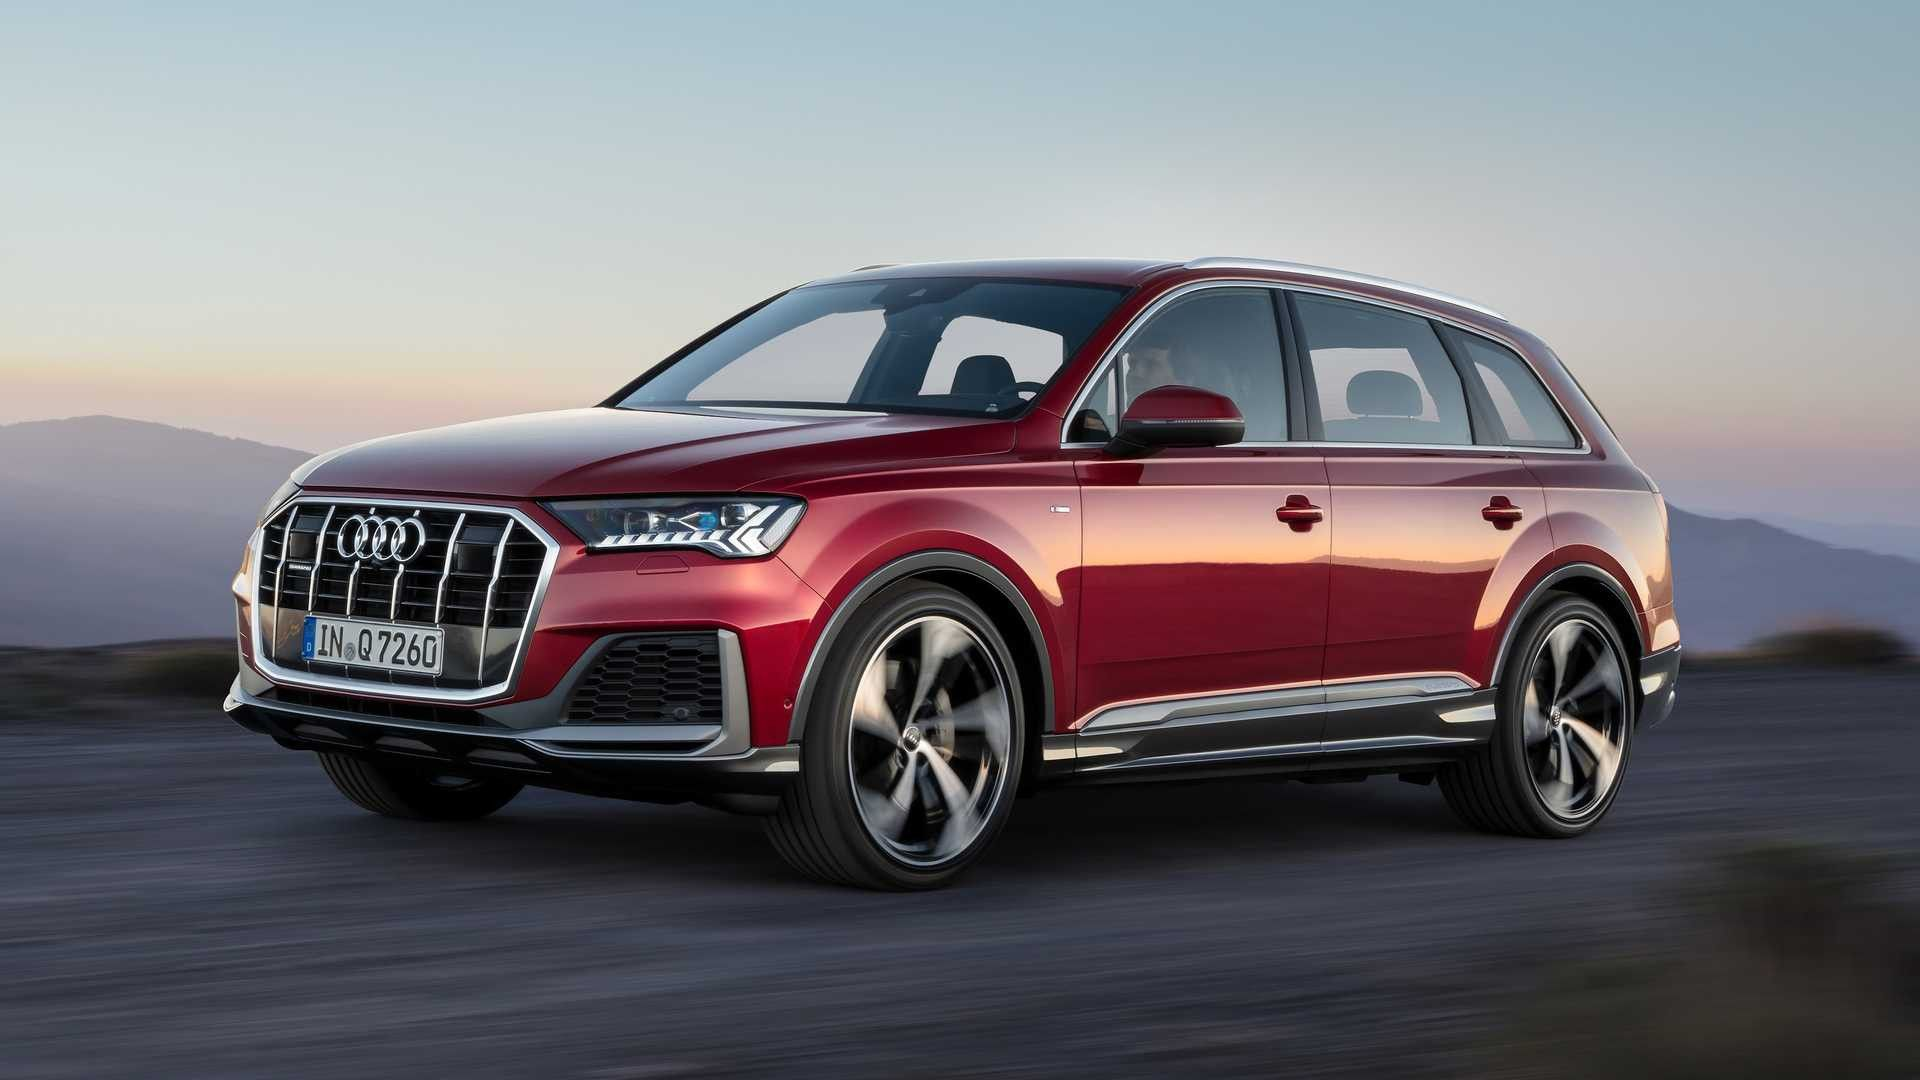 When Will The 2020 Audi Q7 Be Available Rumor In 2020 Audi Q7 Audi New Audi Q7